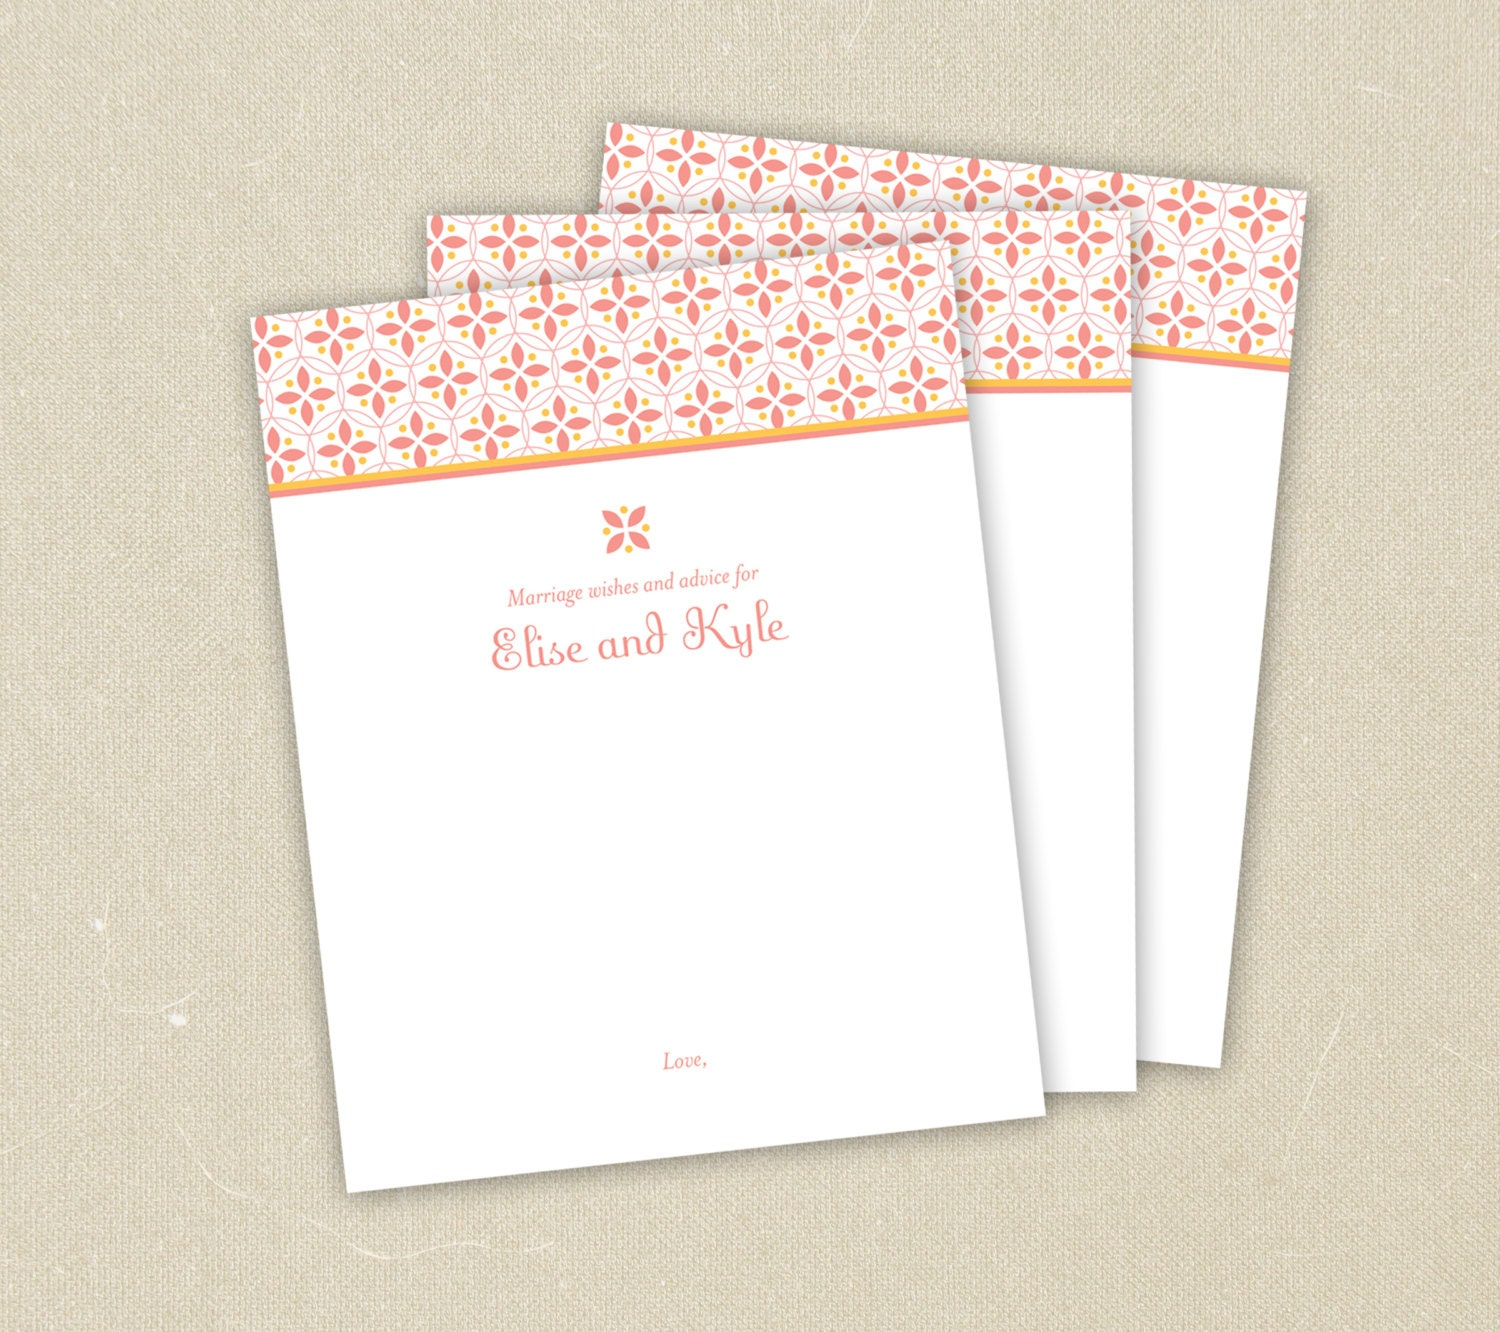 marriage wishes and advice cards for bridal shower summery